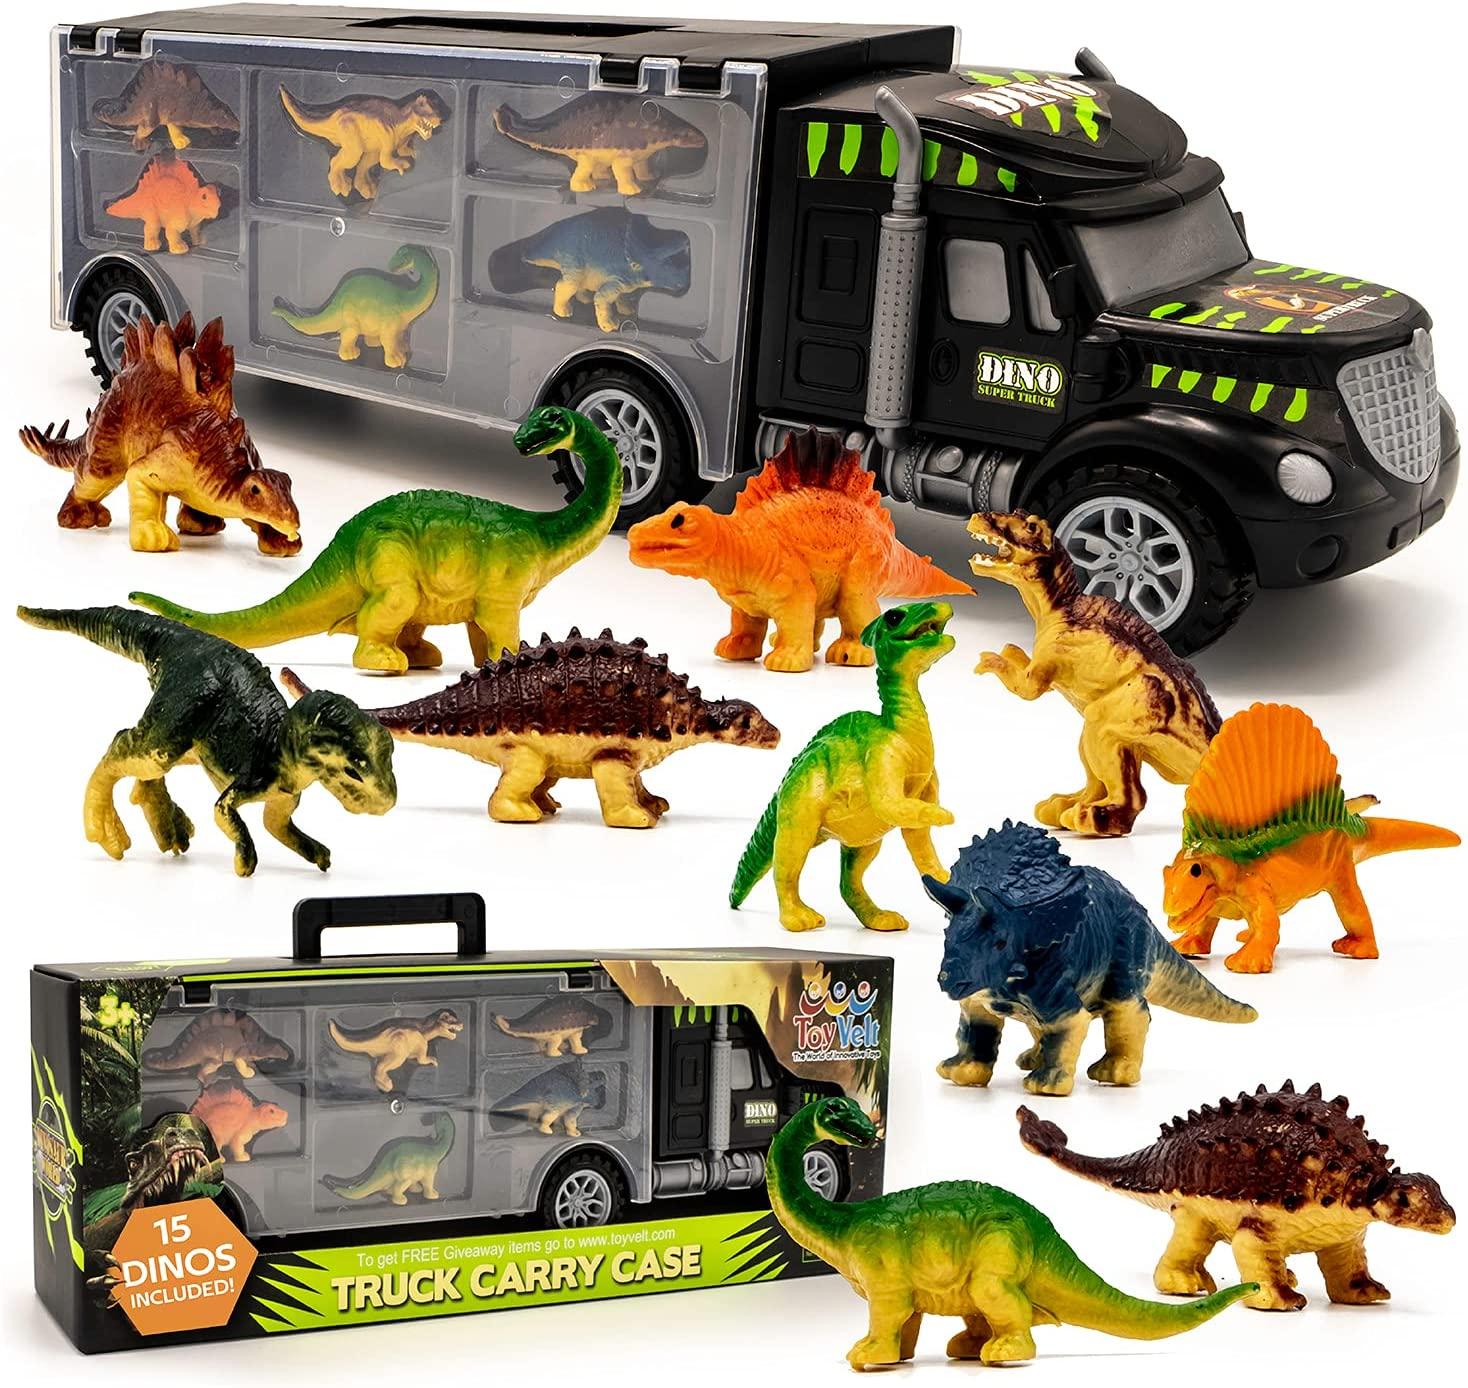 Max 51% OFF Toyvelt 15 Dinosaurs Transport Car Oklahoma City Mall Dinosa Toy With Truck Carrier